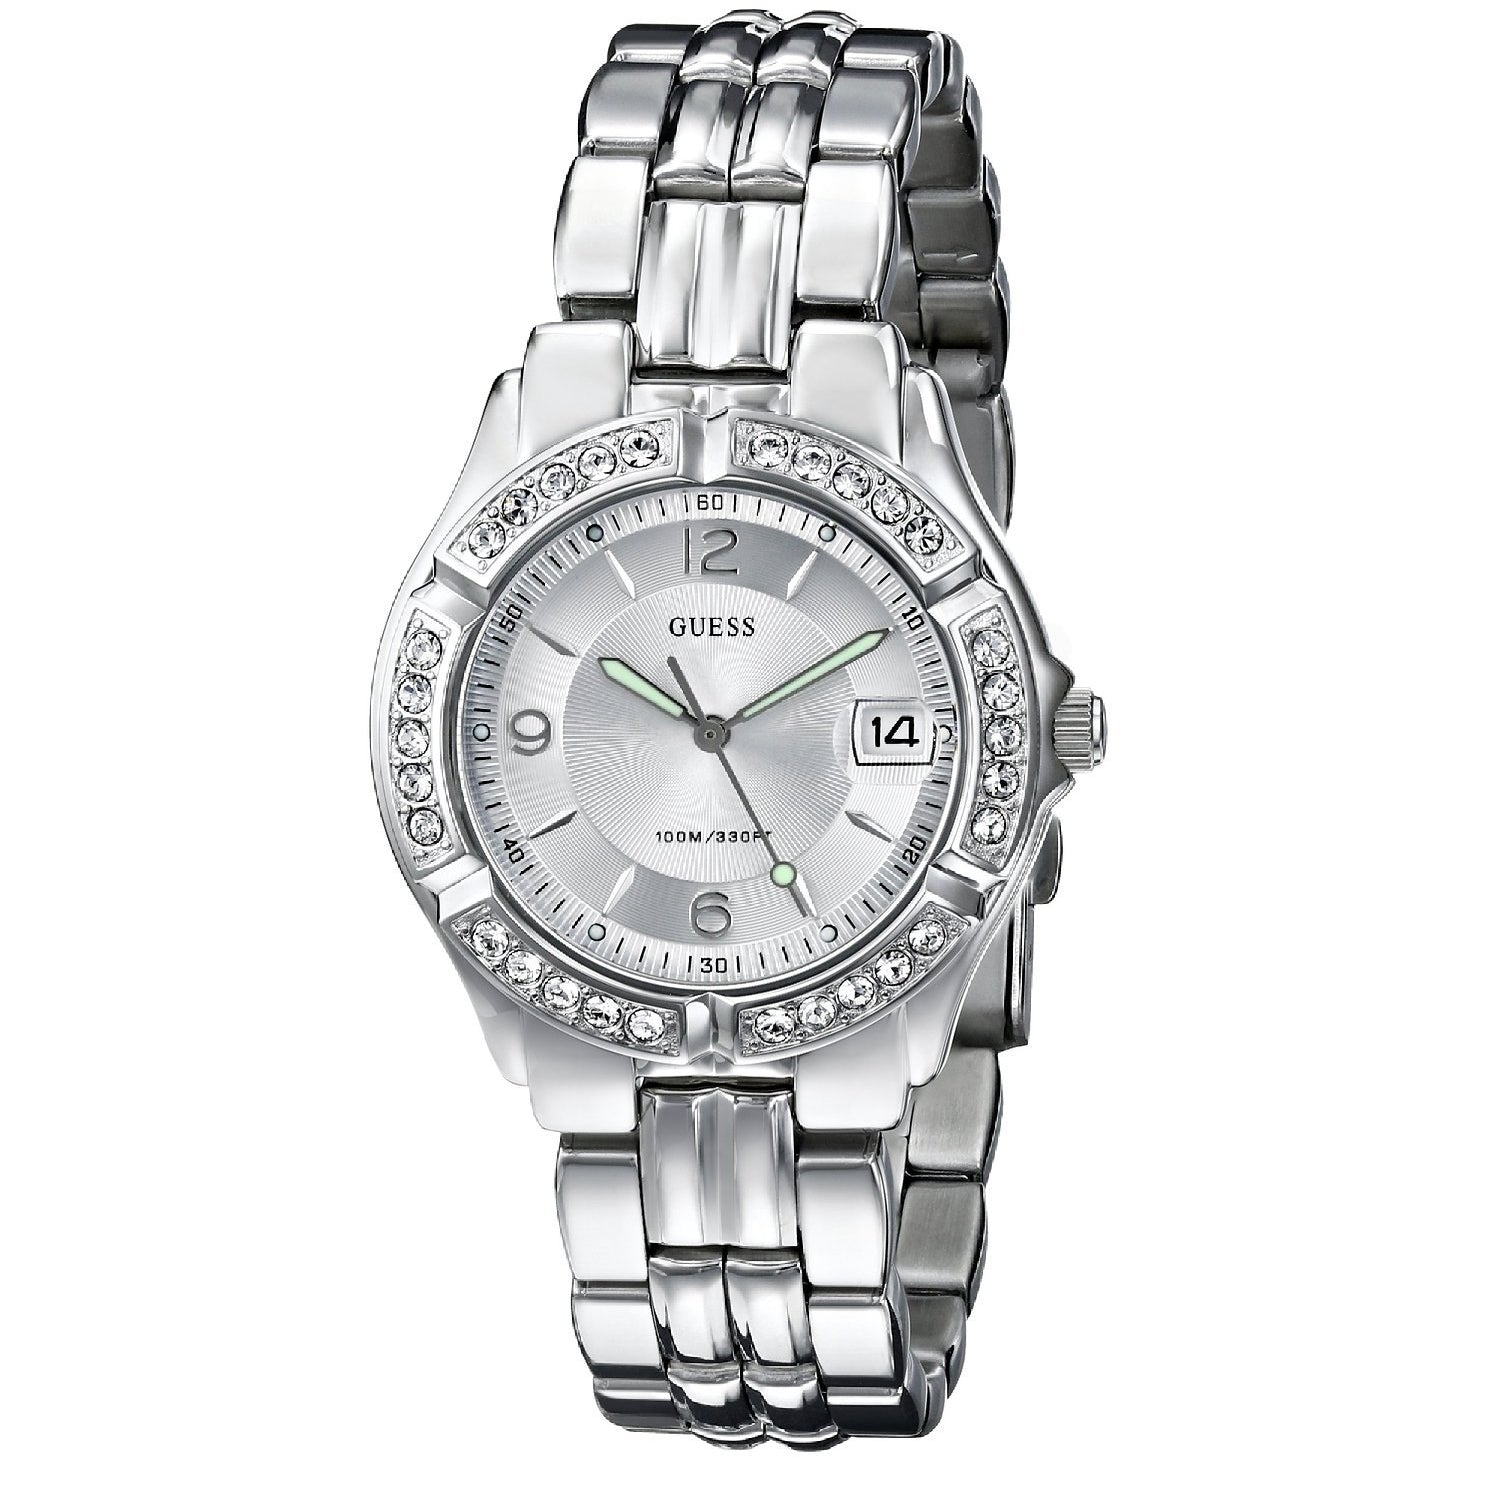 GUESS Women's G75511M Stainless Steel Crystal Accented Watch